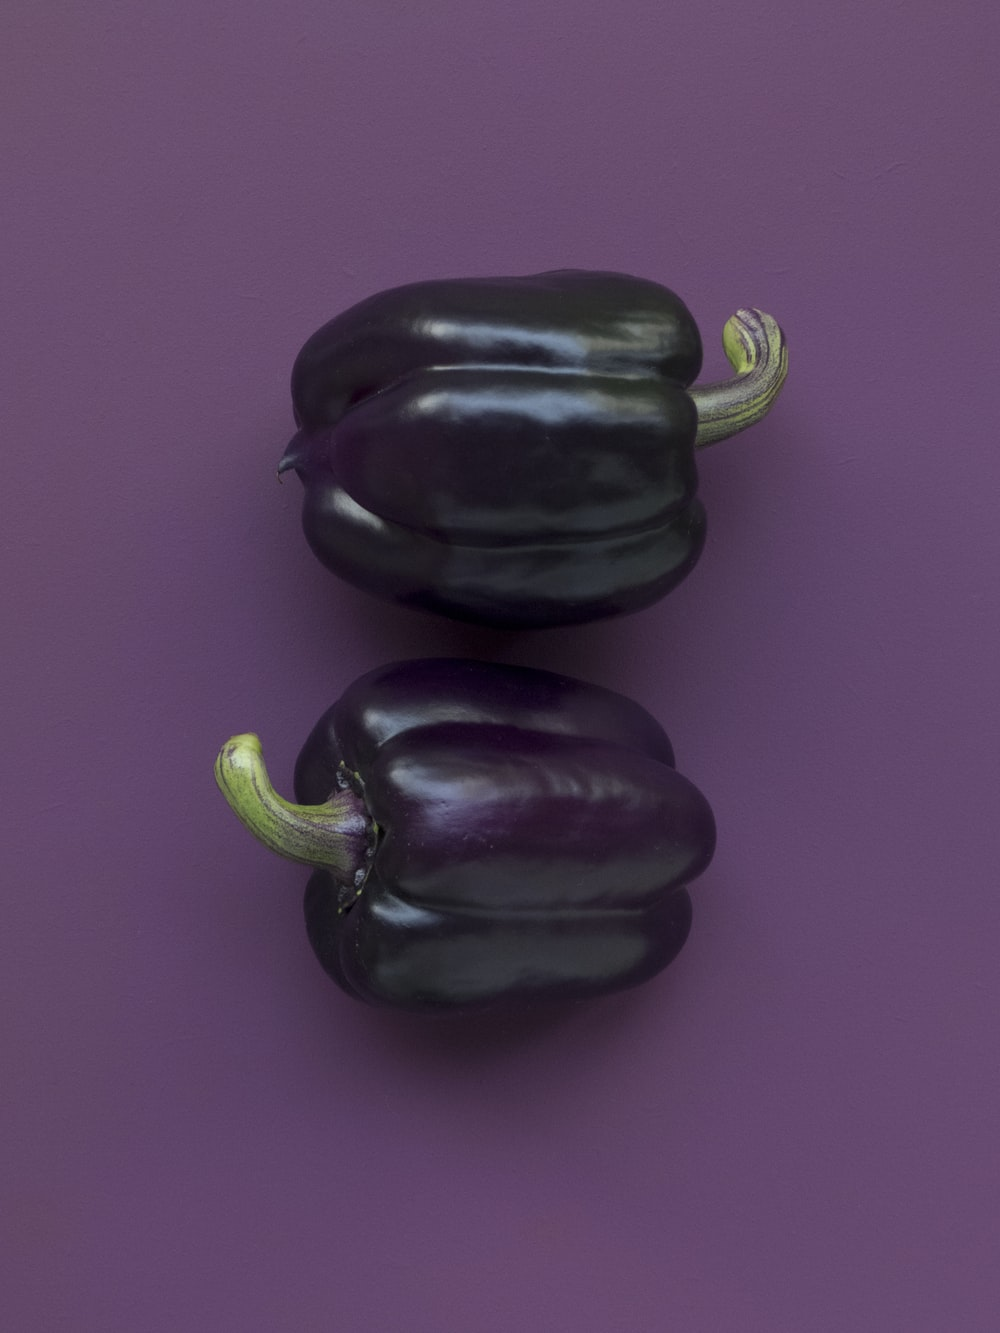 two purple bell peppers on purple surface